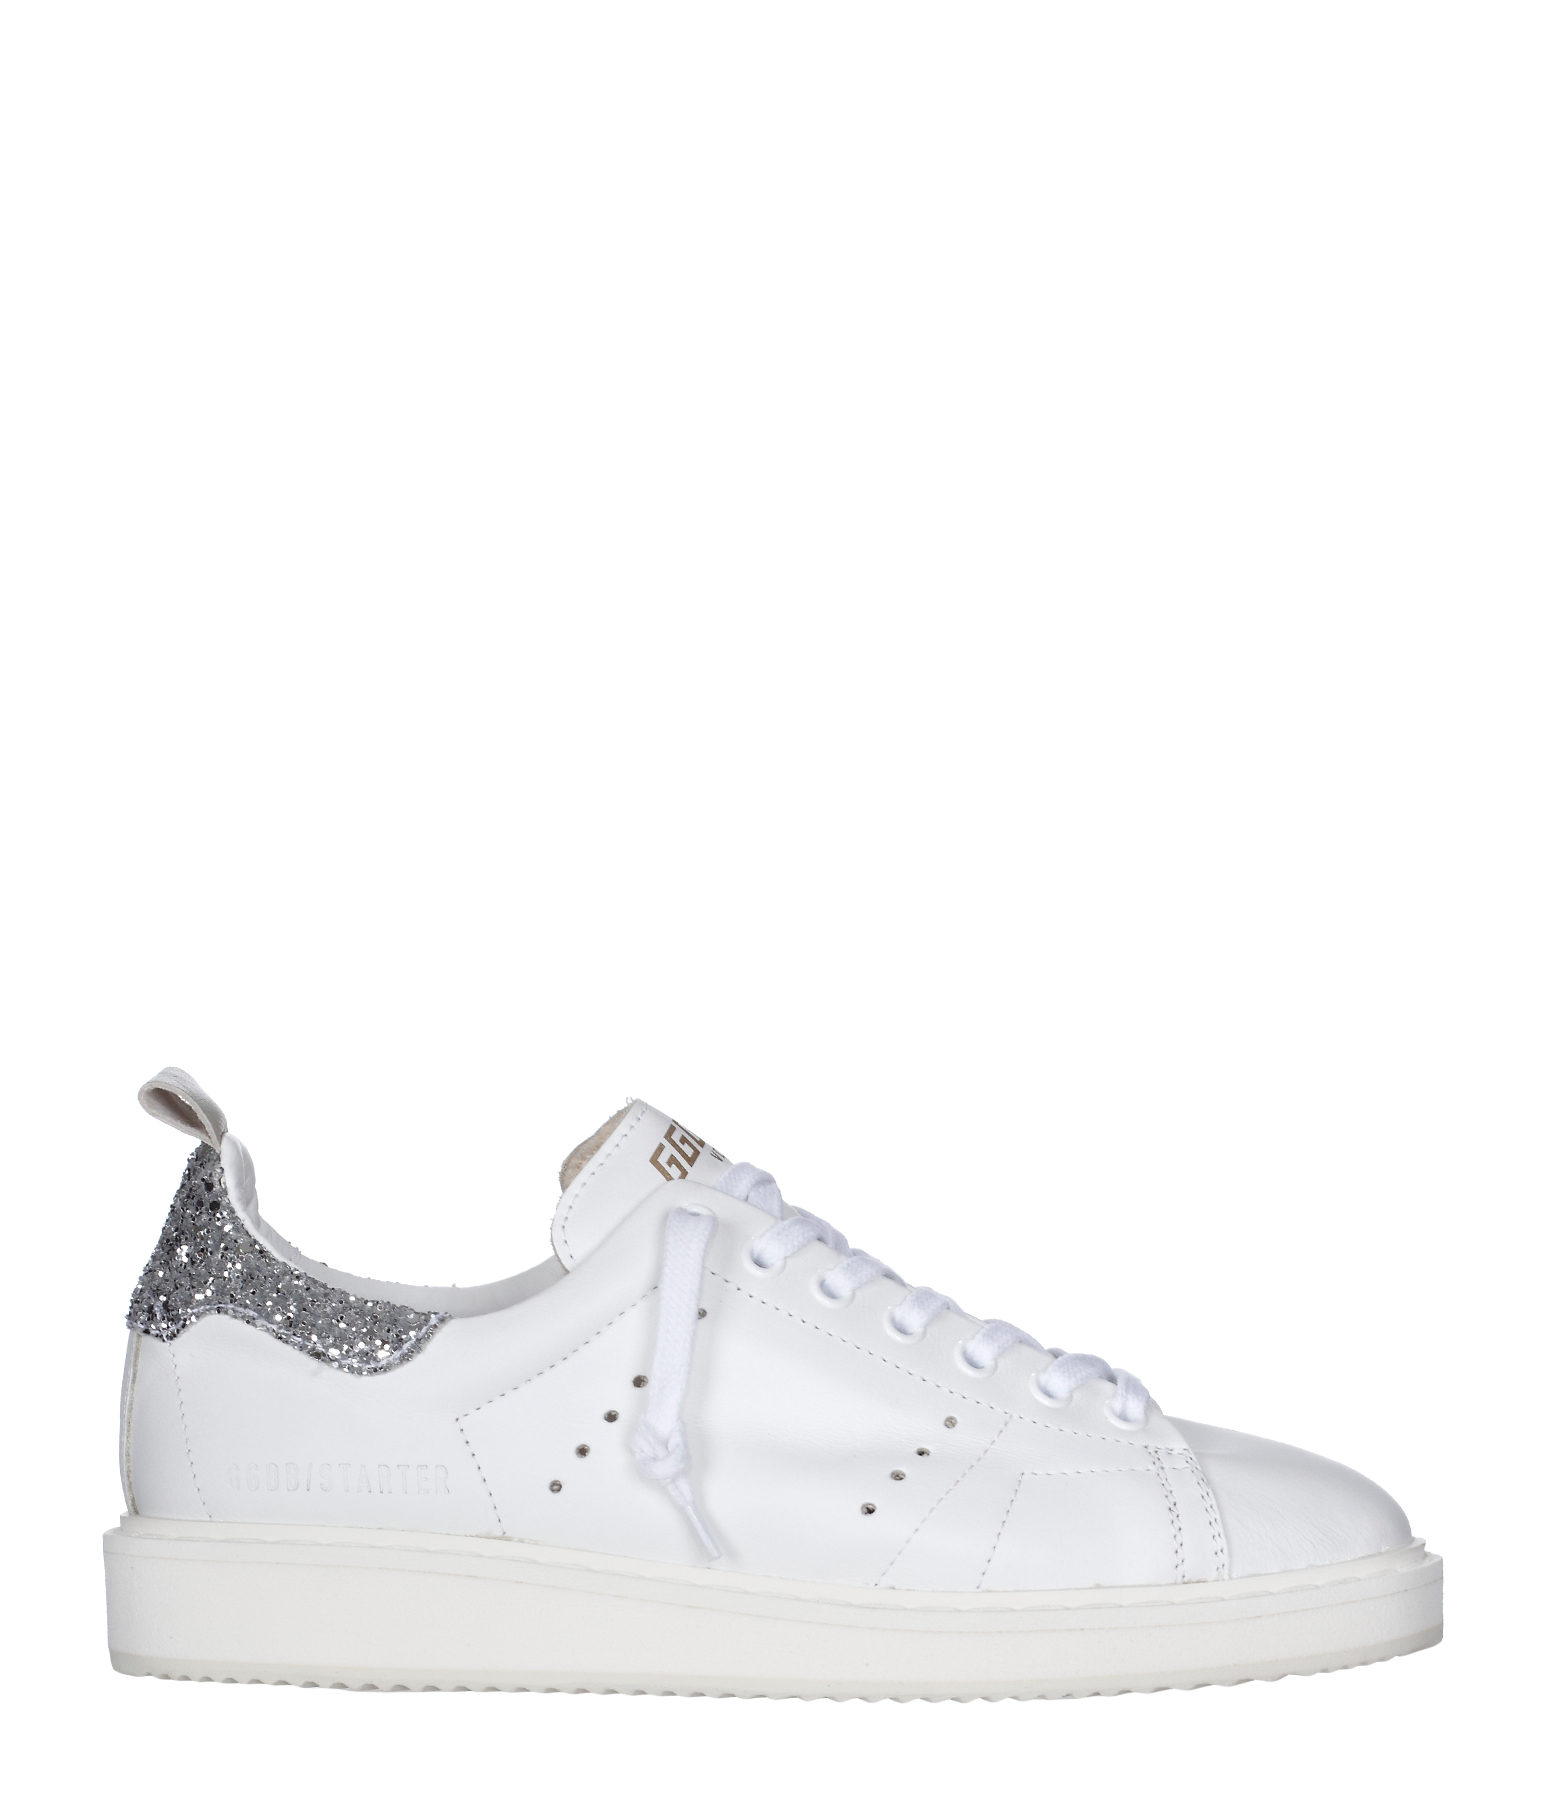 Sneakers Starter Cuir White Silver Glitter